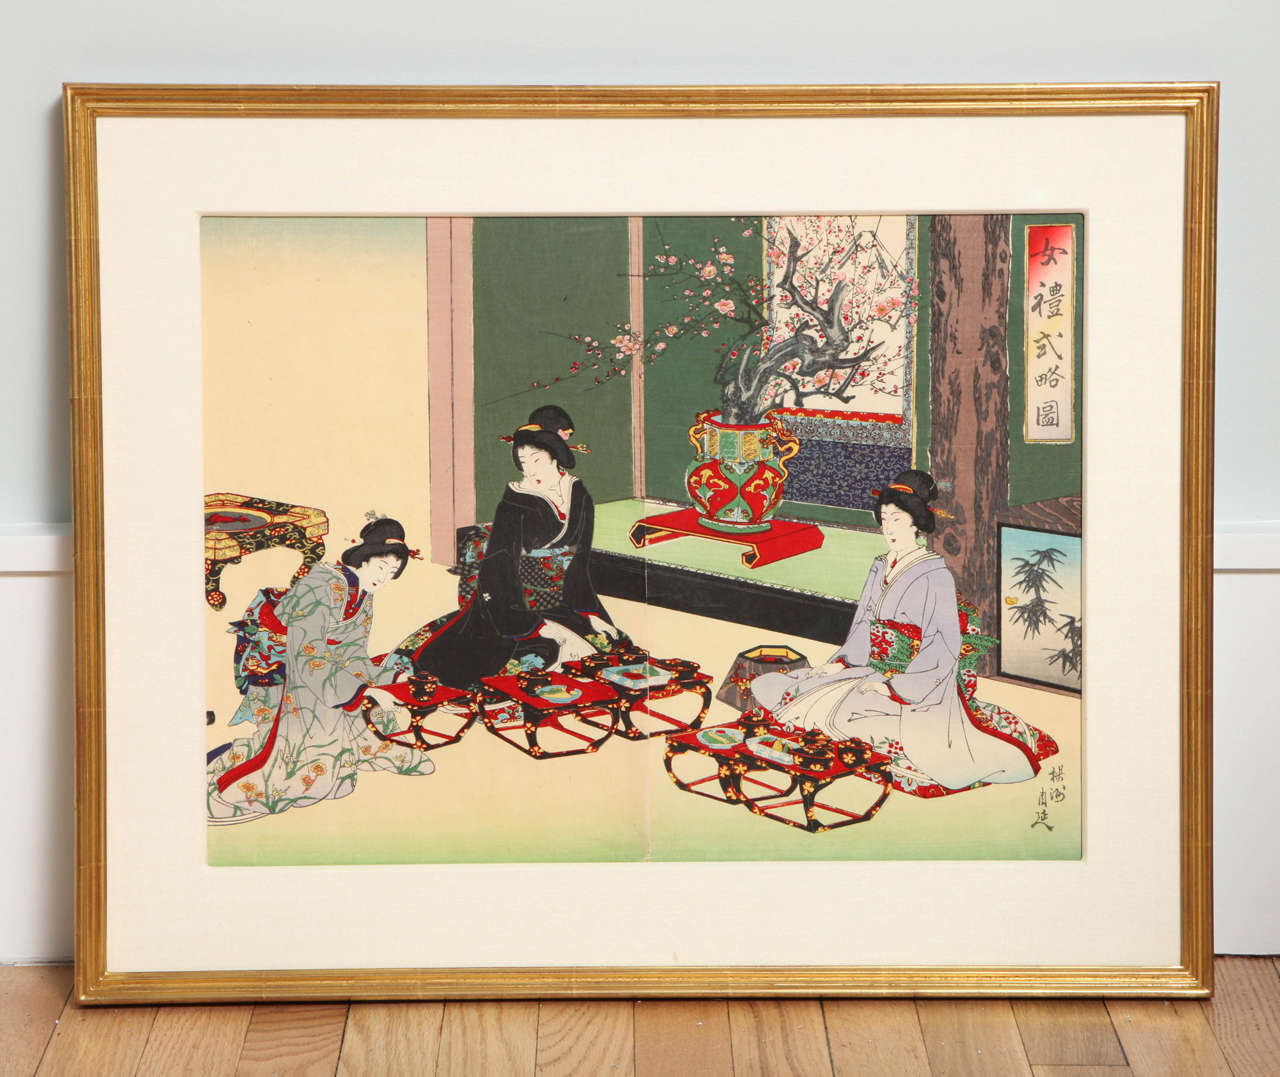 This Meiji-period color woodblock by Toyohara Chikanobu (1838-1912) depicts three elegant female courtiers in traditional dress taking refreshments. This diptych, from the issued triptych, has been mounted in a silk-wrapped mat fitted in a giltwood